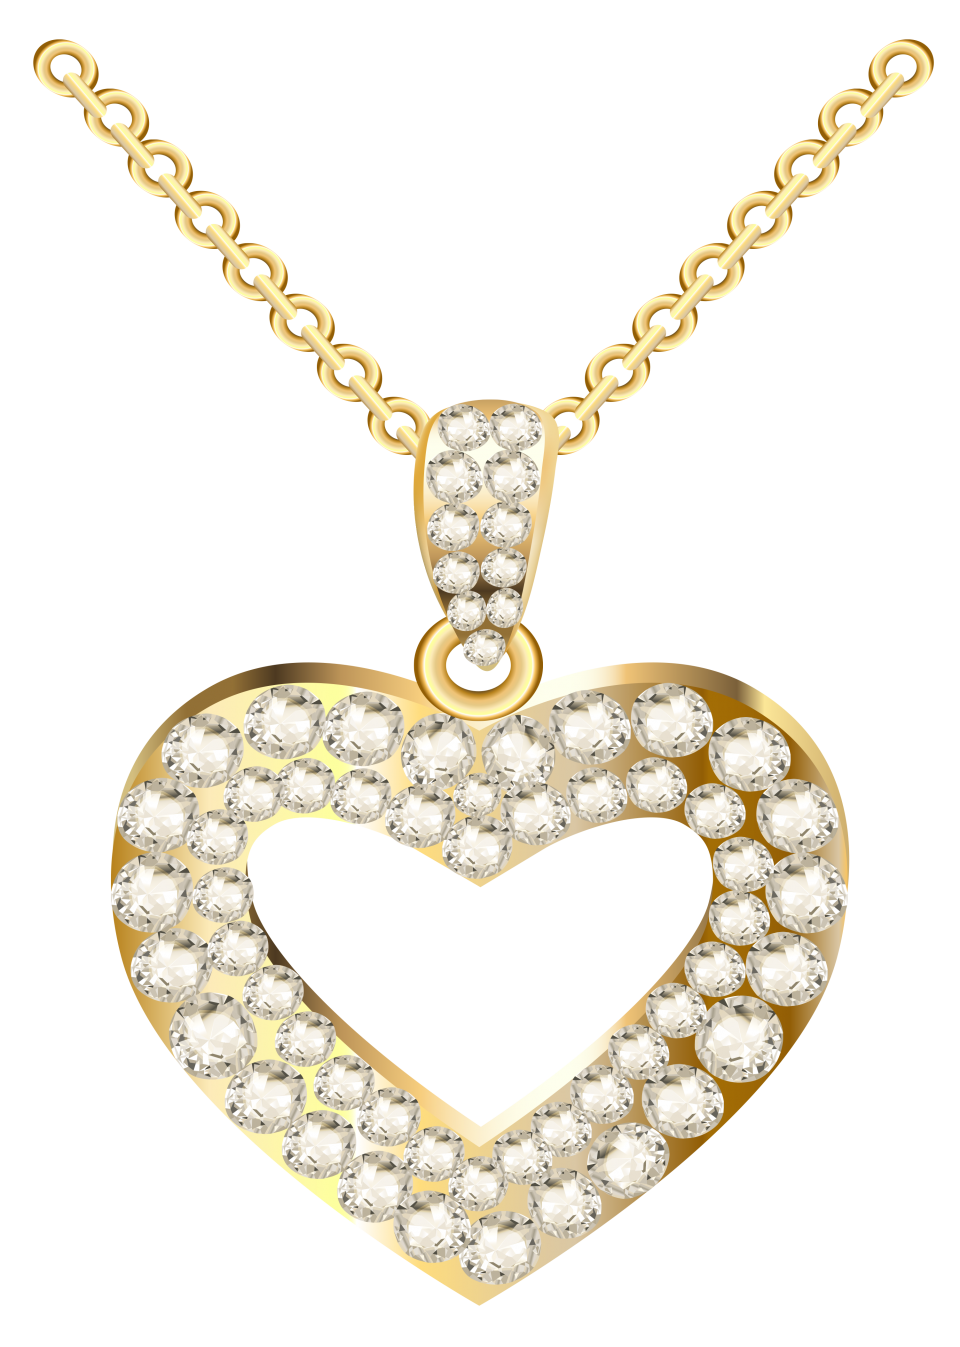 Heart Necklace for Women PNG Image